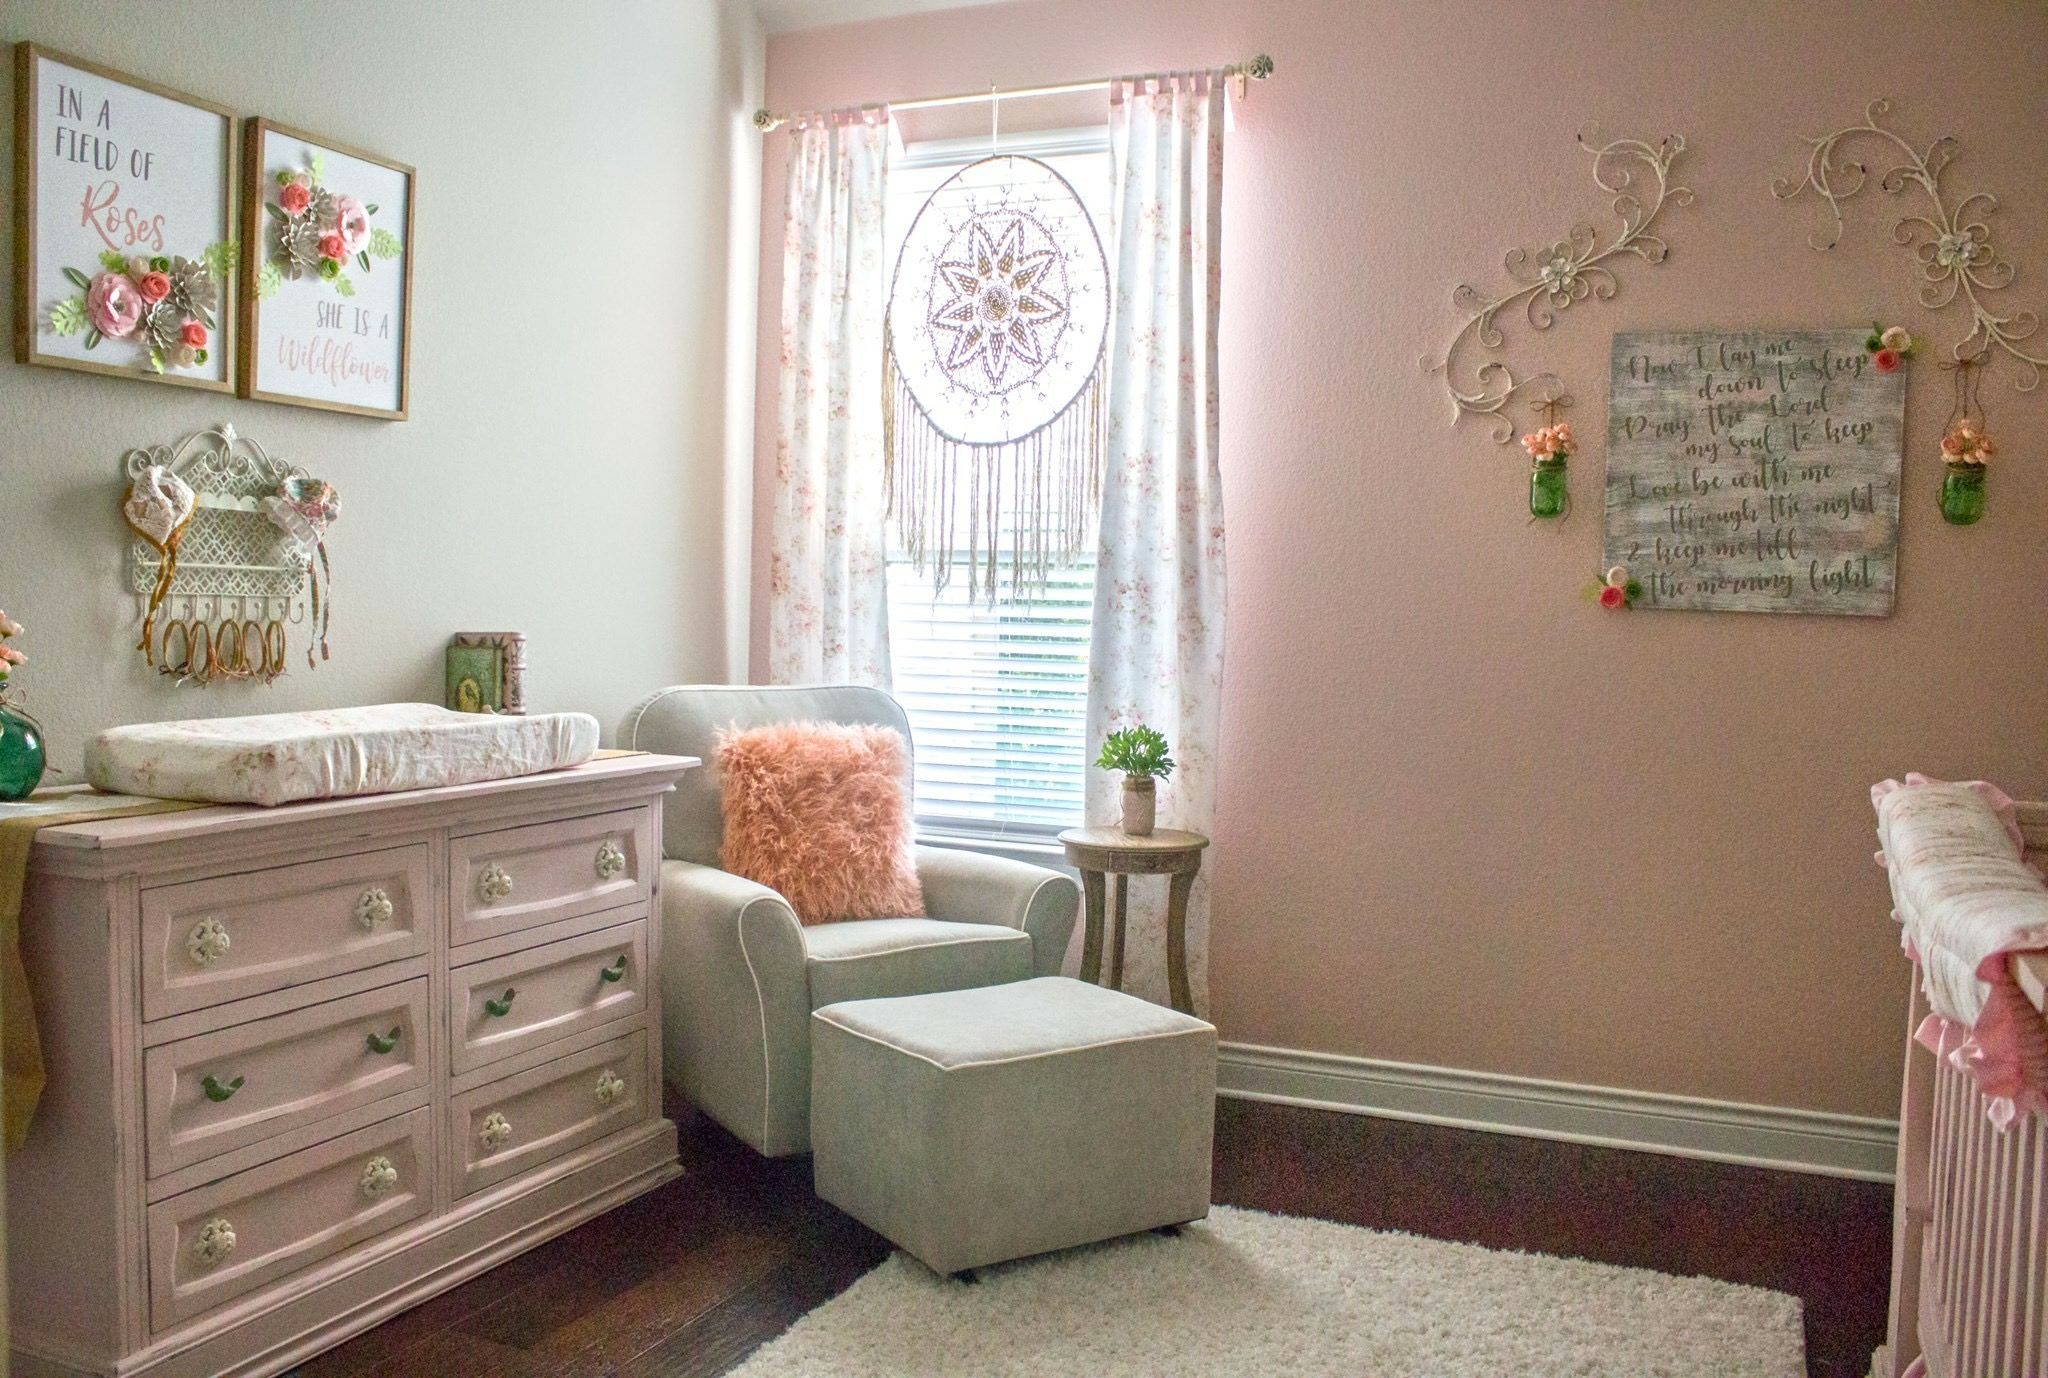 A Shabby Chic Baby Nursery I Painted Distressed Our First S Crib Dresser Hand Crafted The Flowers And Used Decor From My Wedding